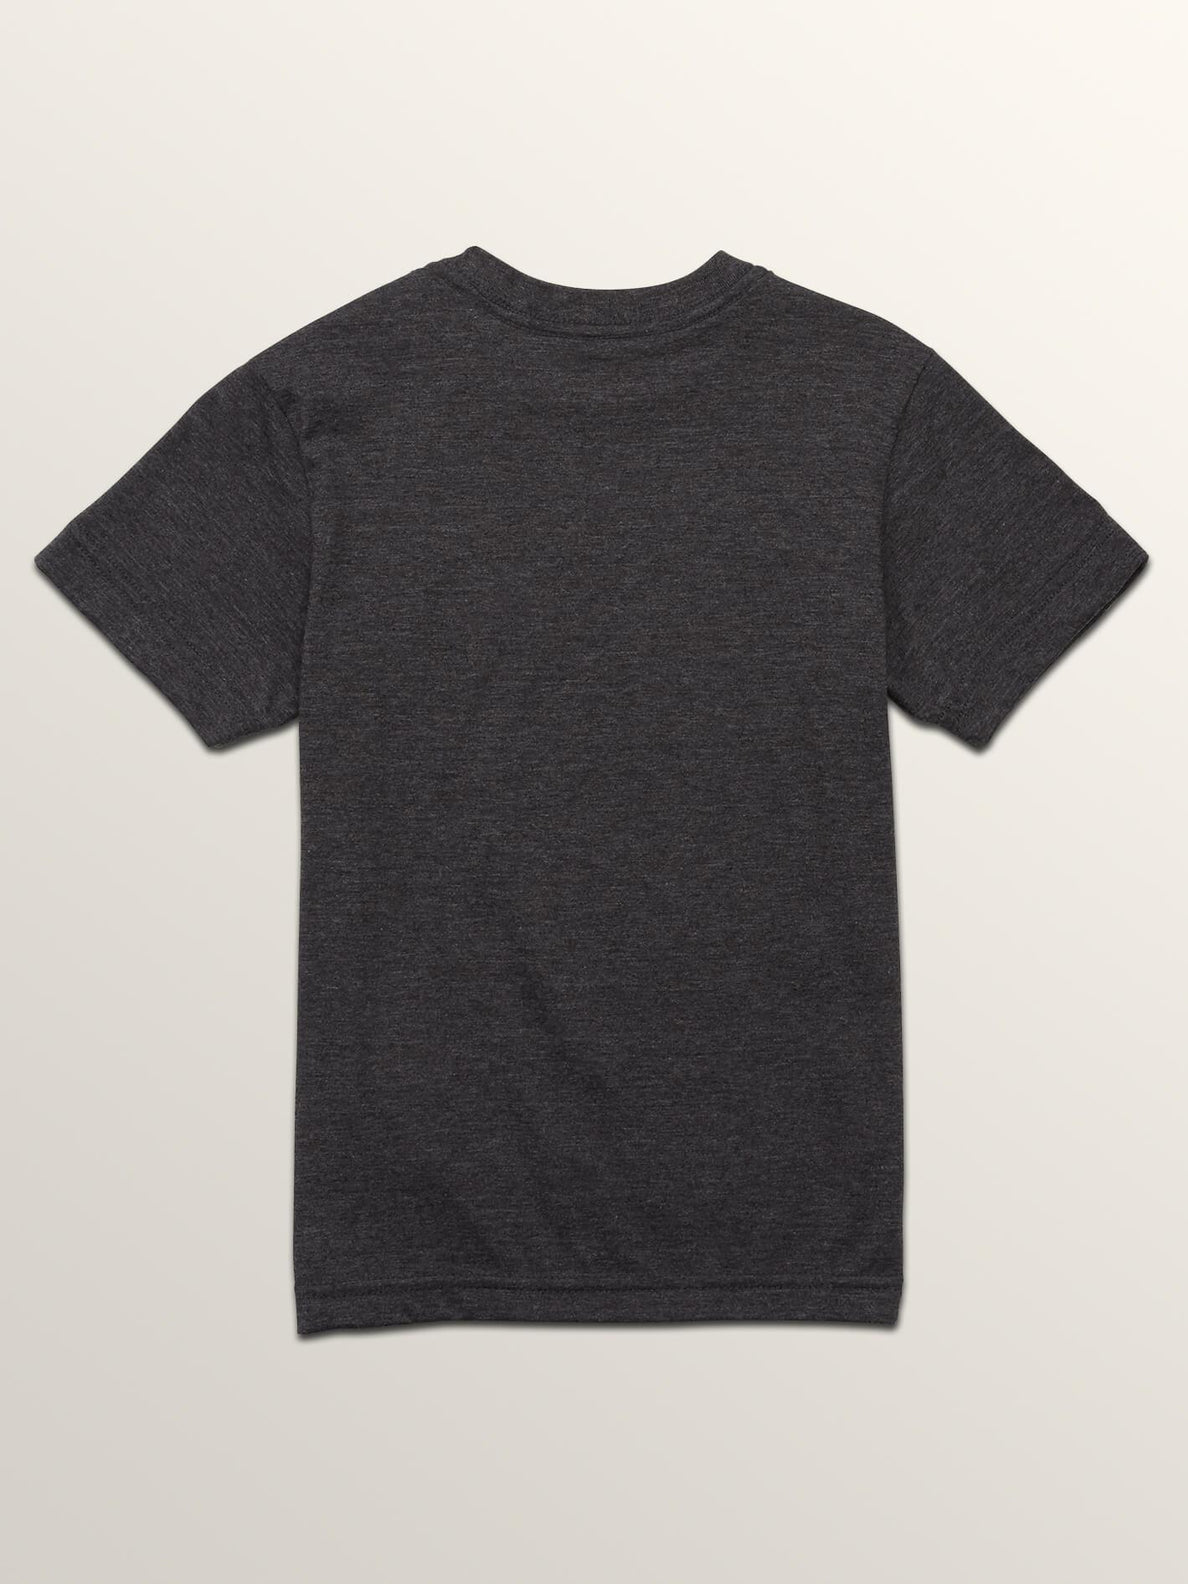 Little Boys Stence Short Sleeve Tee In Heather Black, Back View